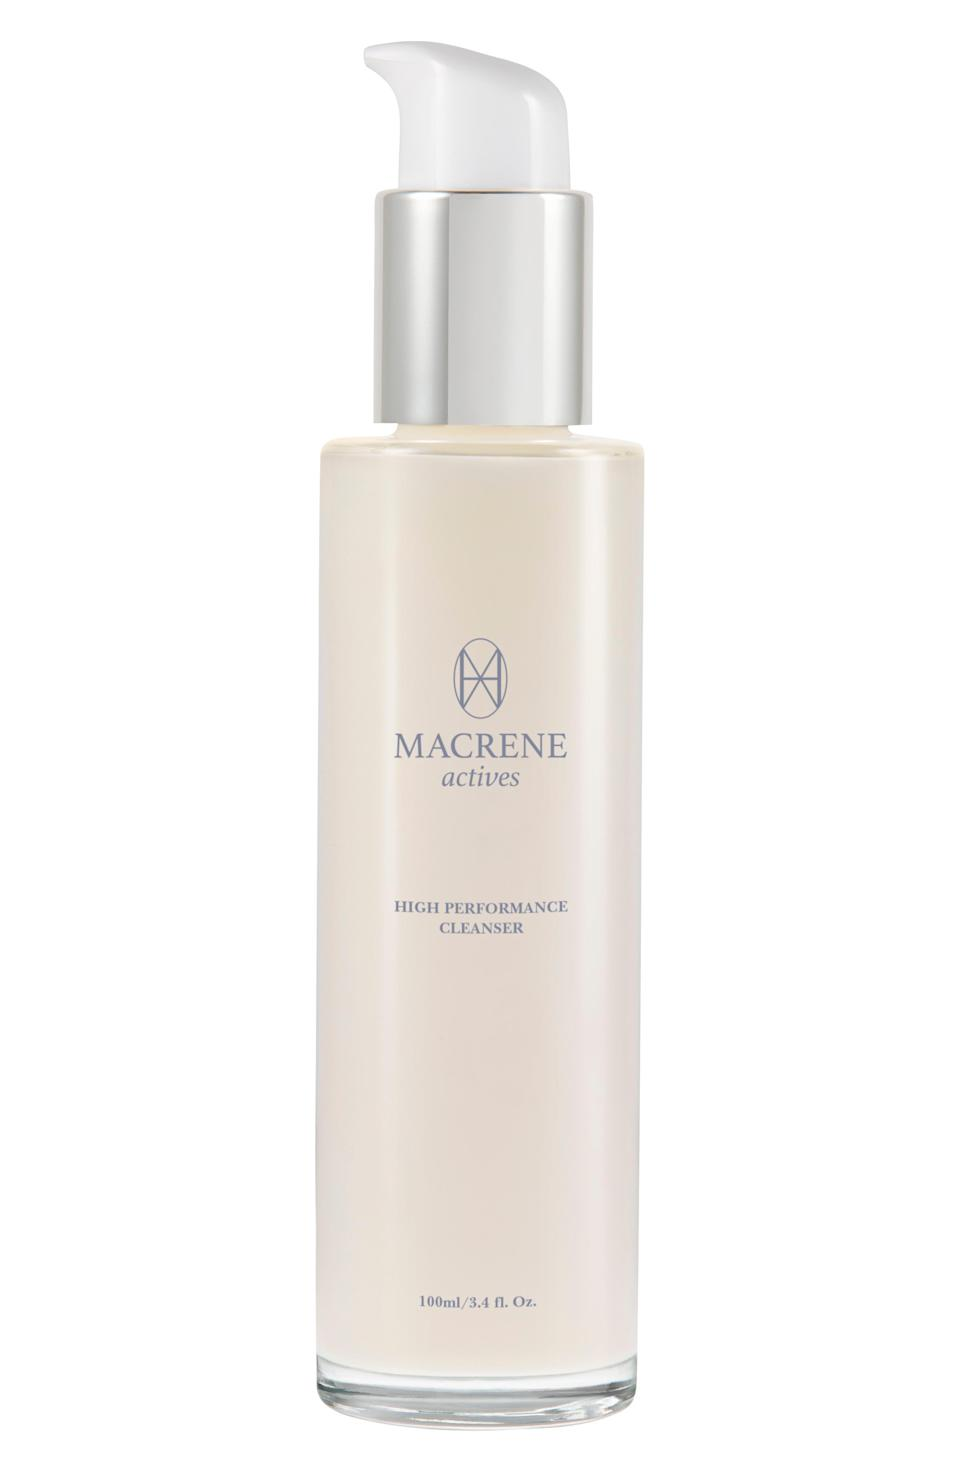 """<p><strong>Macrene Actives</strong></p><p>nordstrom.com</p><p><strong>$95.00</strong></p><p><a href=""""https://go.redirectingat.com?id=74968X1596630&url=https%3A%2F%2Fwww.nordstrom.com%2Fs%2Fmacrene-actives-high-performance-cleansing-treatment%2F5773348&sref=https%3A%2F%2Fwww.townandcountrymag.com%2Fstyle%2Ffashion-trends%2Fg37682006%2Fnicky-hilton-fall-favorites%2F"""" rel=""""nofollow noopener"""" target=""""_blank"""" data-ylk=""""slk:Shop Now"""" class=""""link rapid-noclick-resp"""">Shop Now</a></p><p>""""One of my other fall faves would be Macrene Actives High Performance Cleanser. During the colder months, I like to switch to a milky cleanser because foam cleansers can be quite dehydrating. It's just a great cleanser that firms, tones, smooths. Love it.""""</p>"""